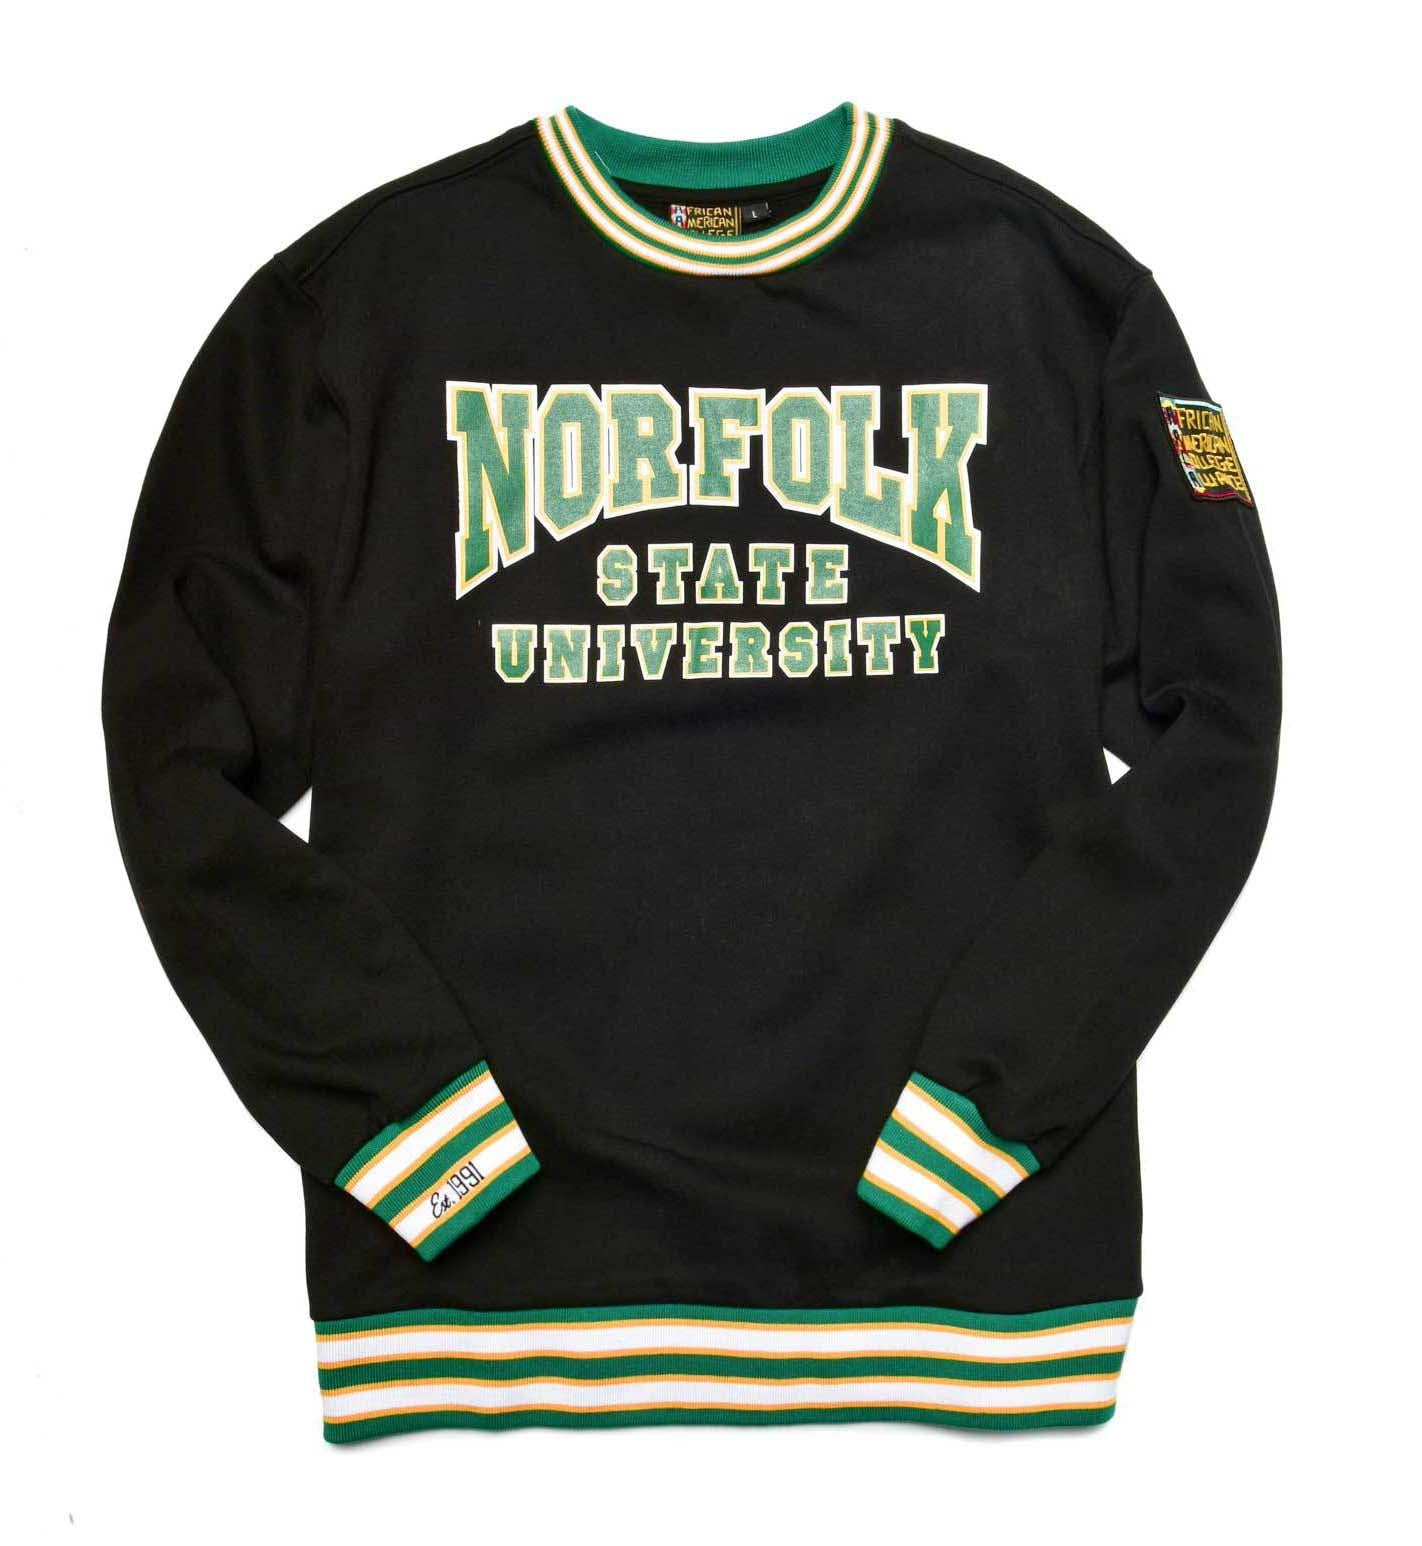 newest e7fc1 8d250 NORFOLK STATE UNIVERSITY - AACA Clothing